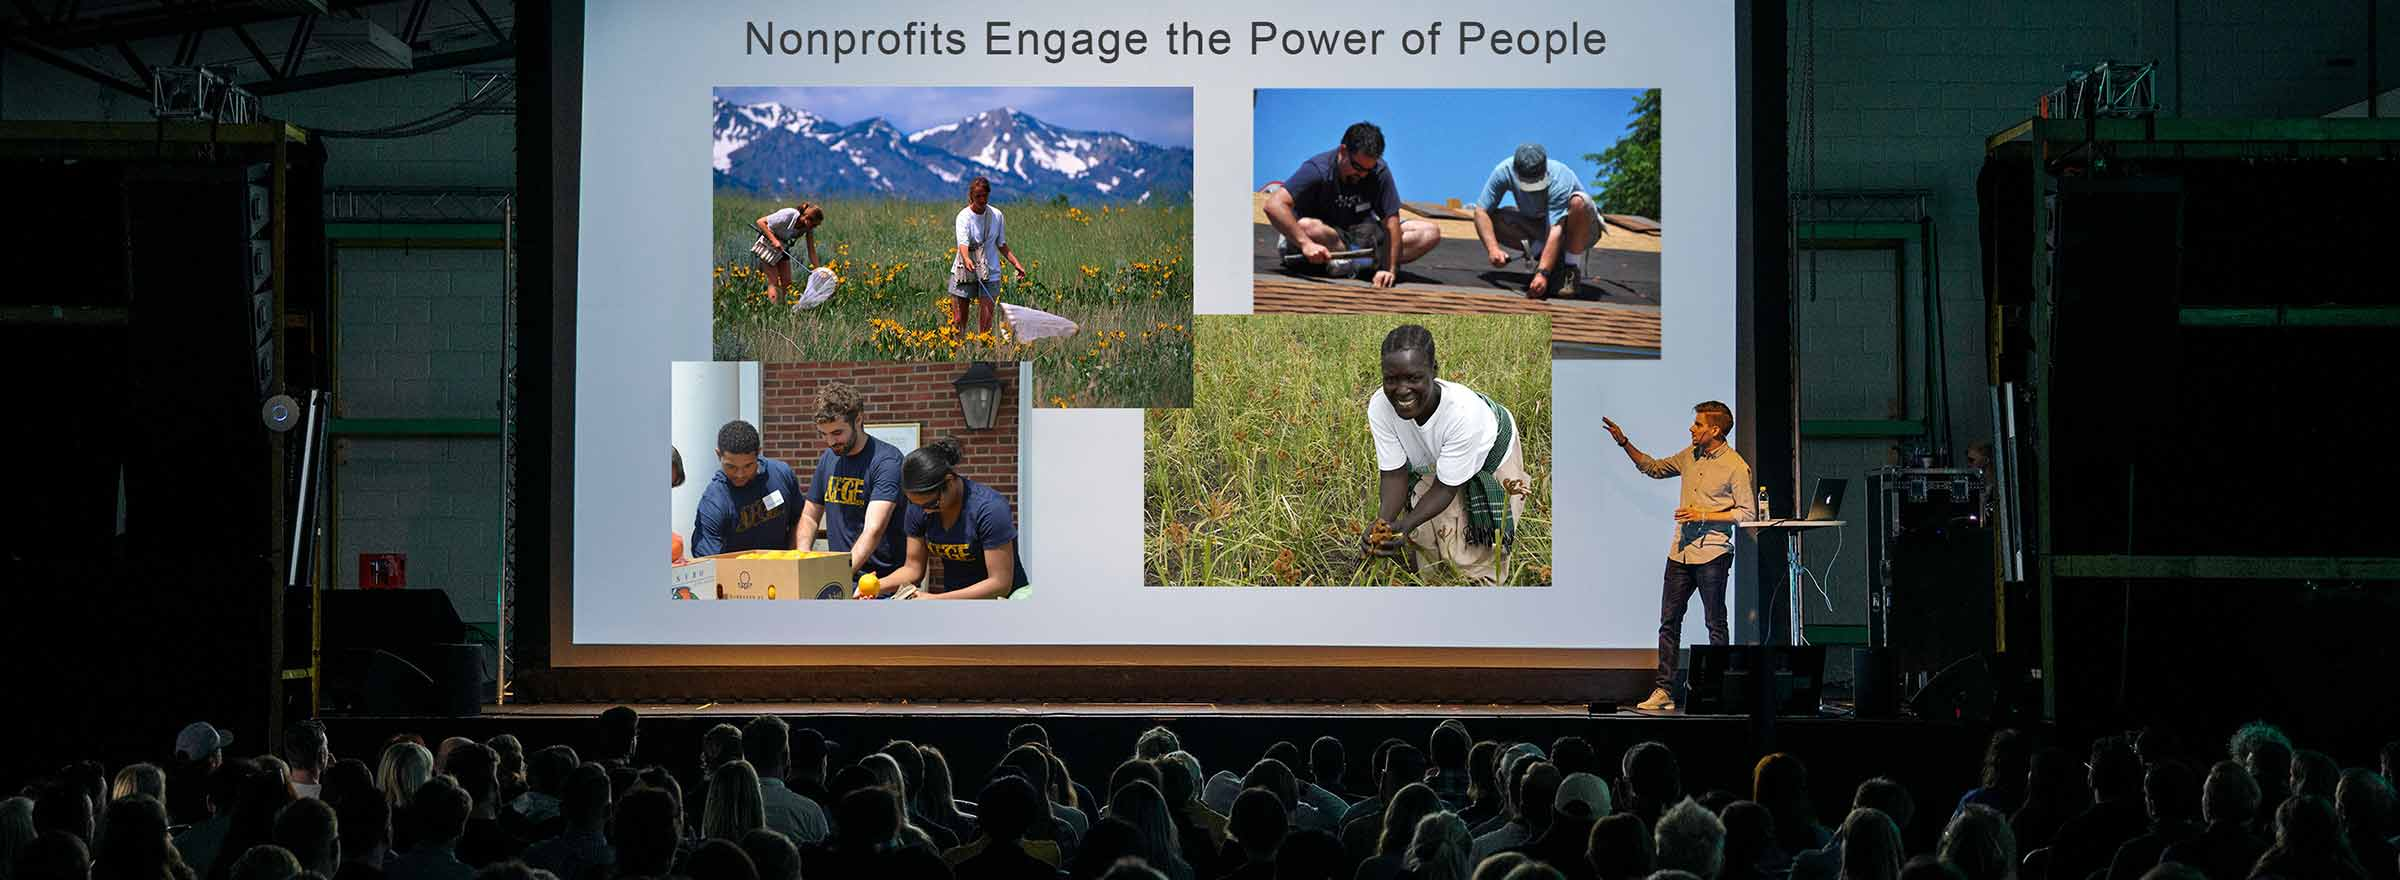 person giving a nonprofit powerpoint presentation